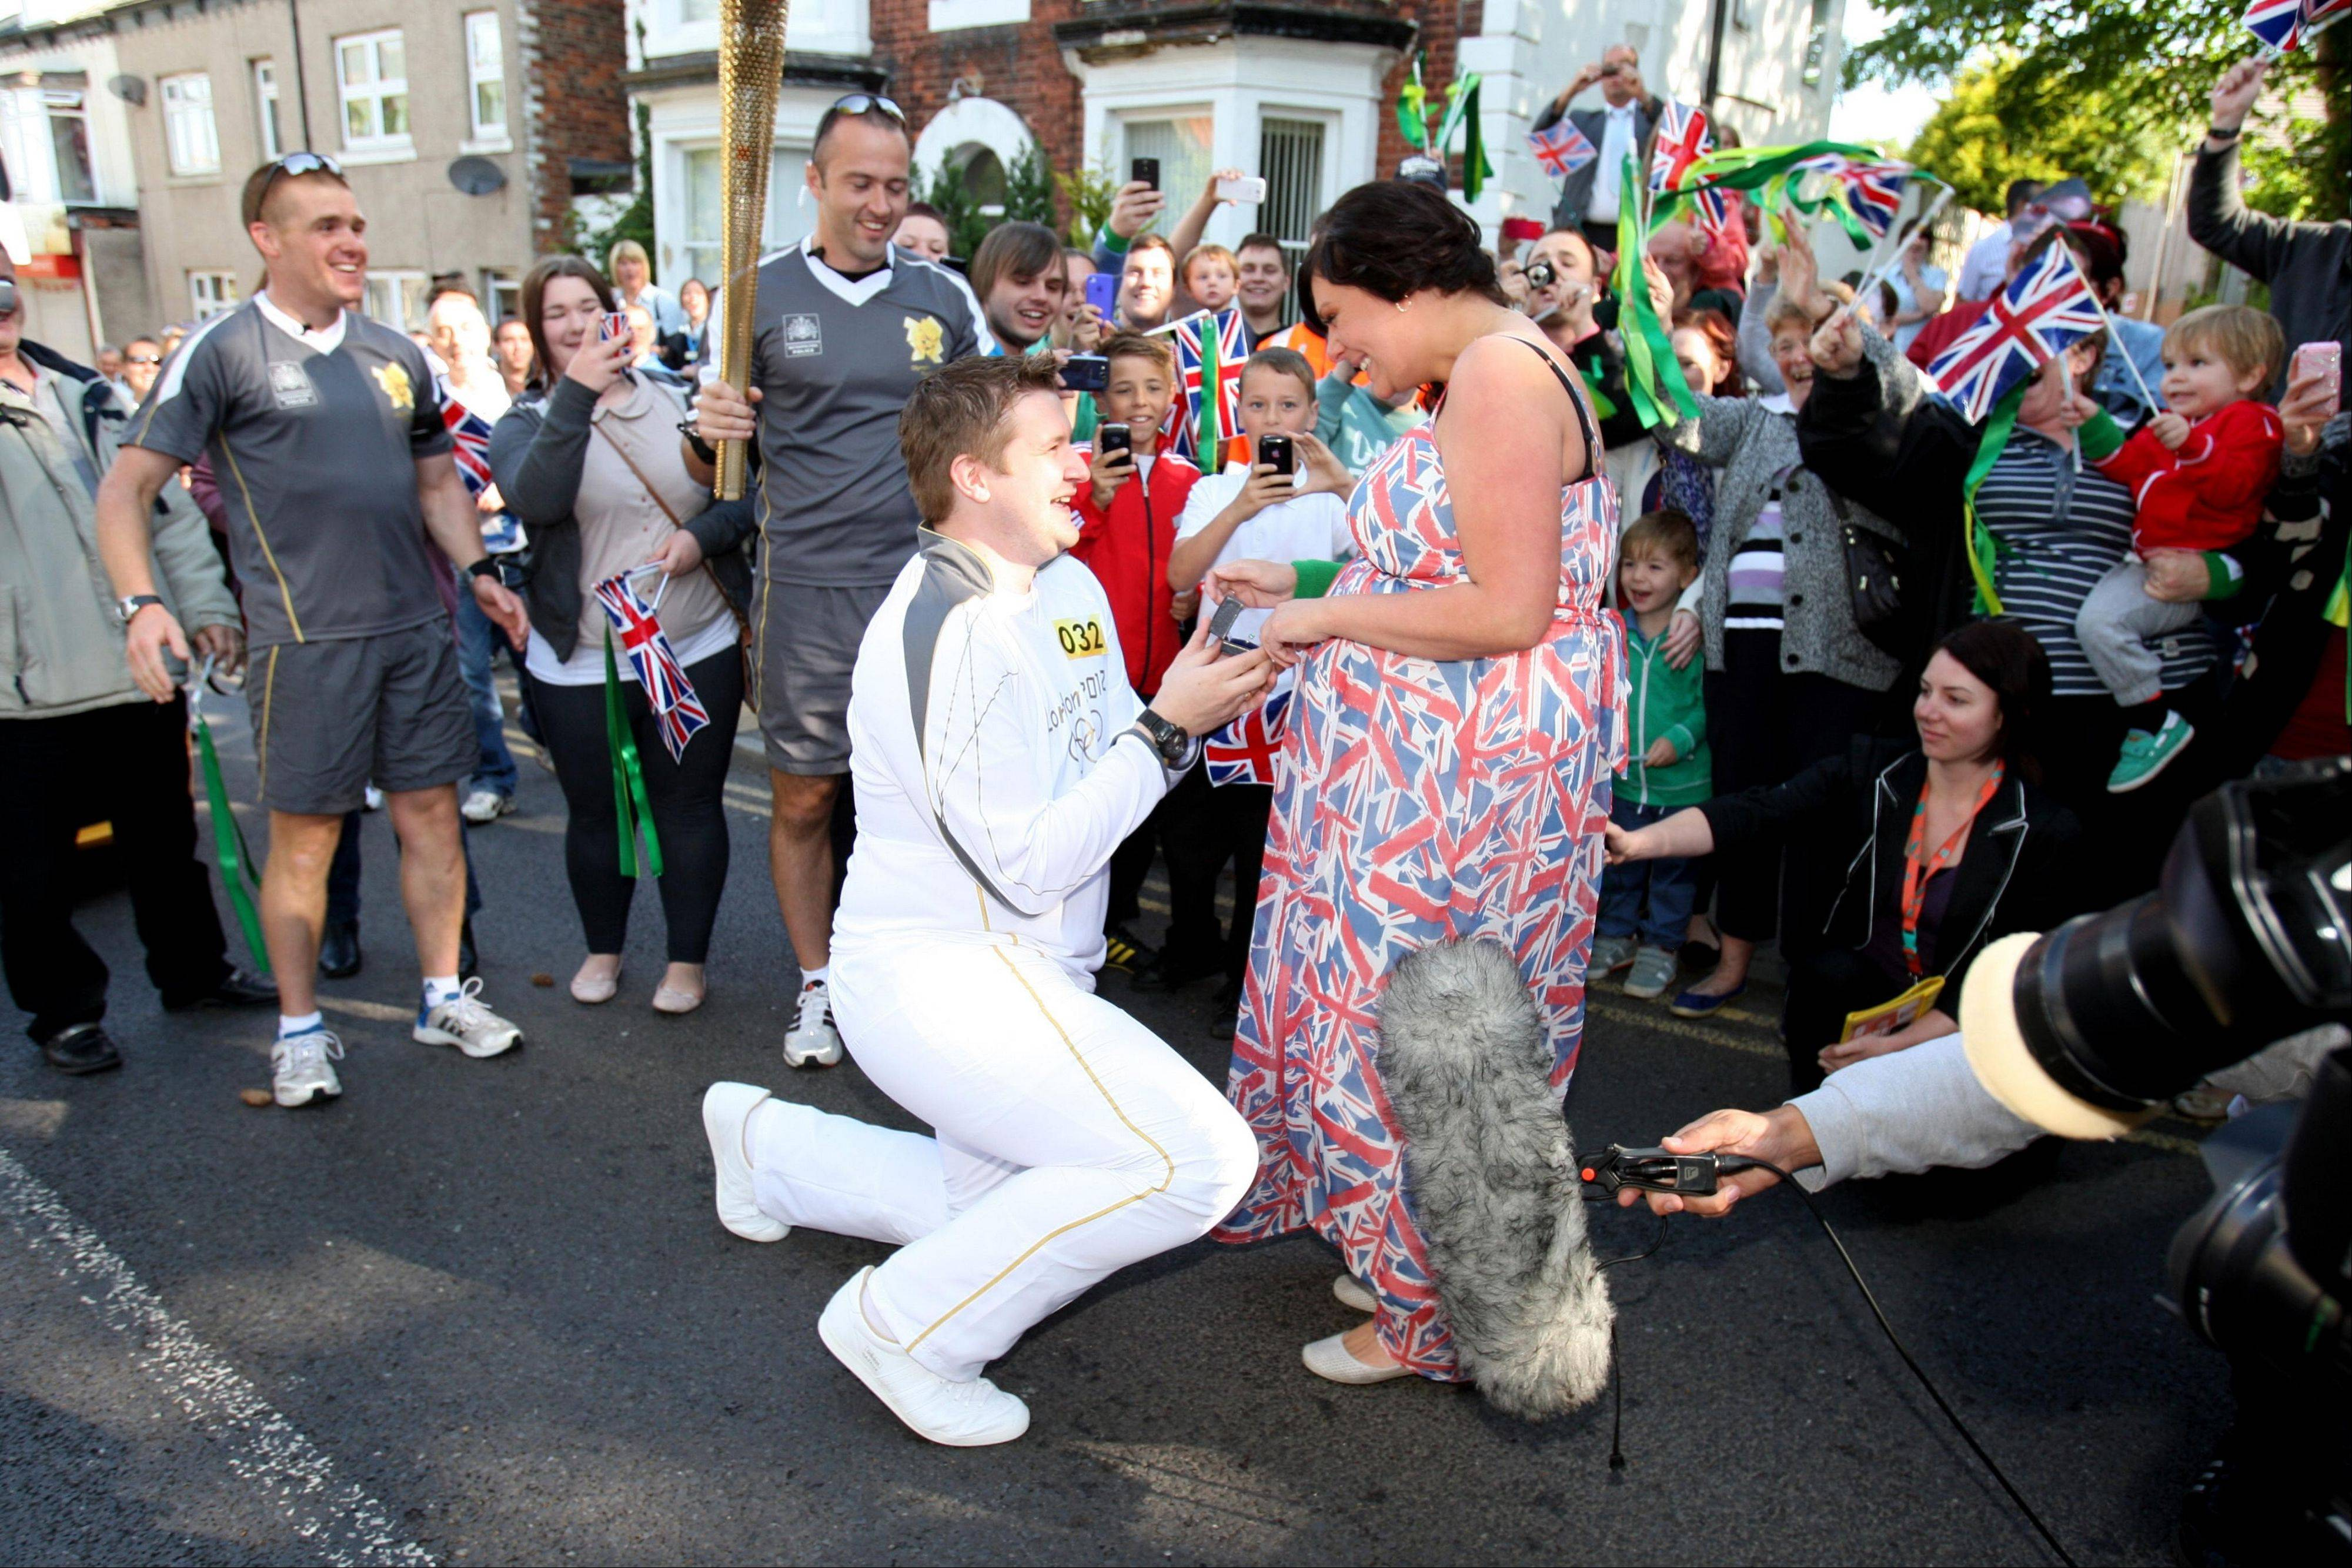 Olympic relay Torchbearer David State stopped midway through his Torch Relay leg between Marske-by-the-Sea and Loftus, England, to propose to his girlfriend, Christine Langham, before continuing the relay Monday June 18.